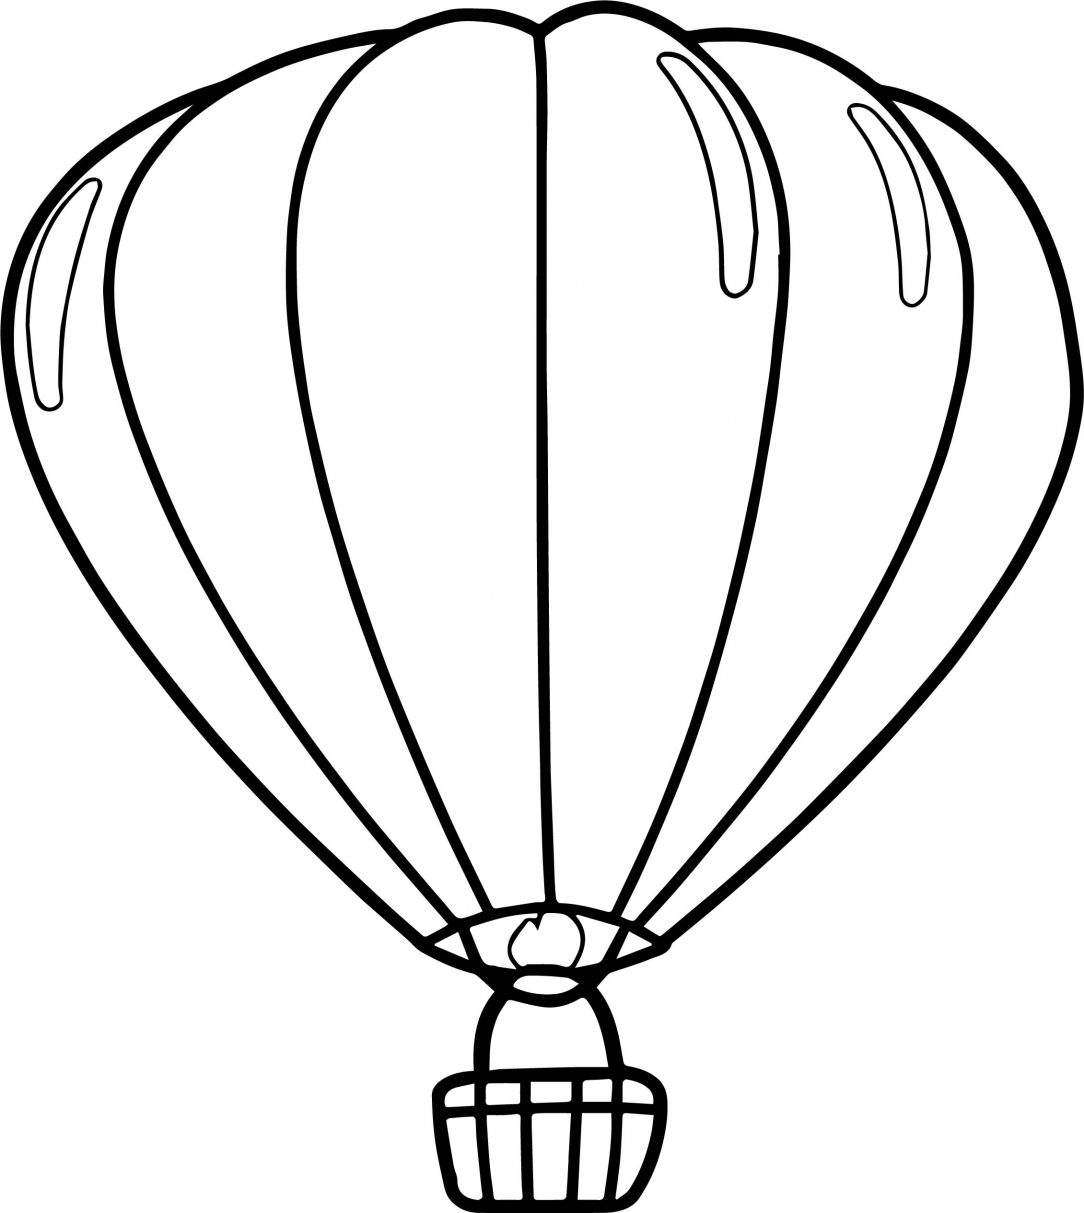 1084x1213 Balloon Coloring Pages Printable Tags Battery Drawing Balloon